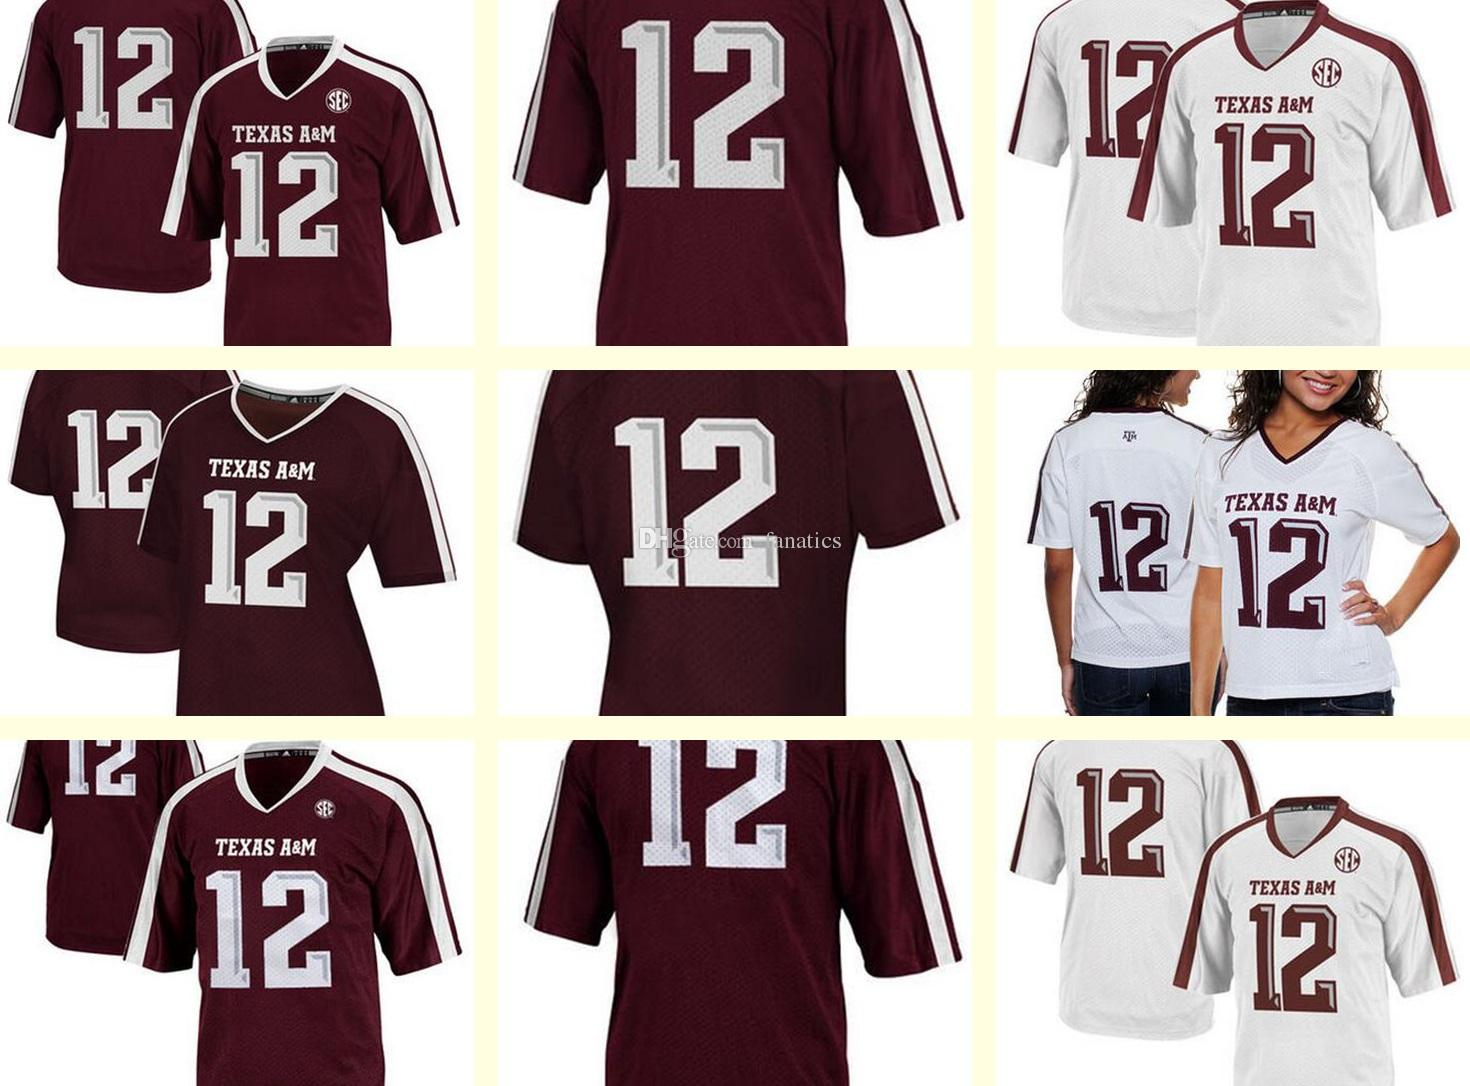 338d013ff texas am aggie jerseys  2016 ncaa texas am aggies 40 miller white jerseys  see larger image. see larger image